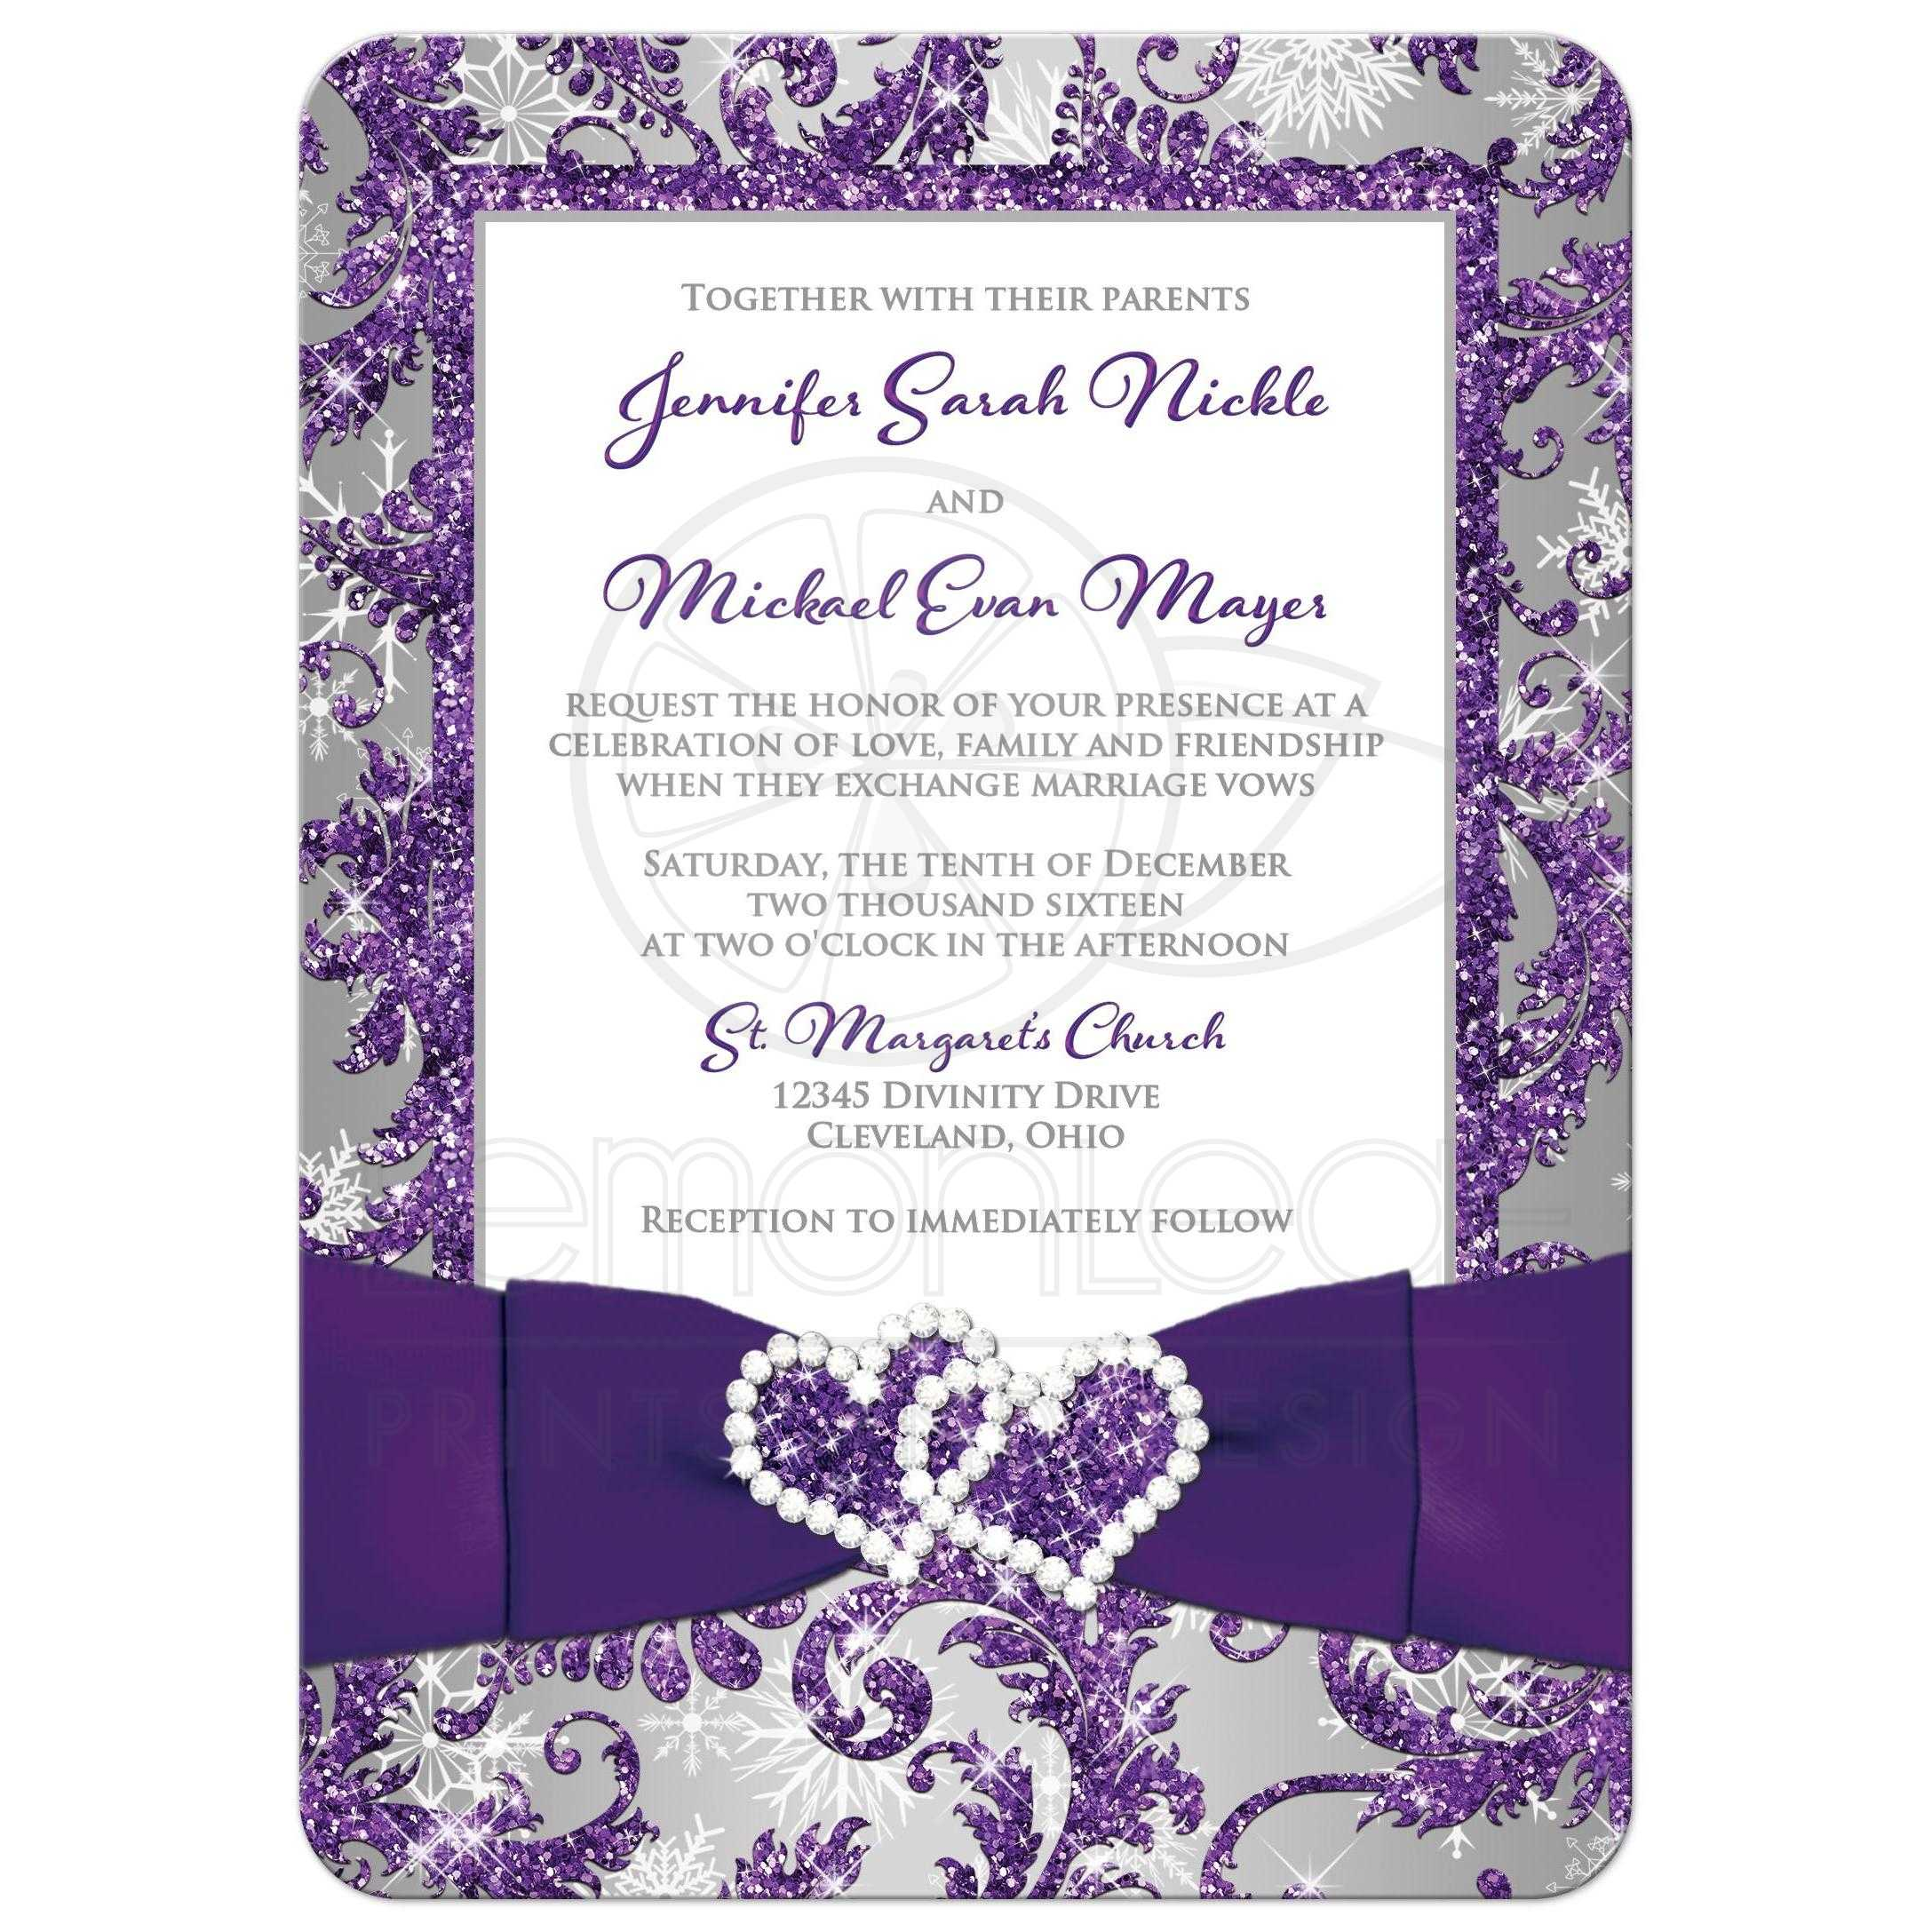 Great Winter Wonderland Photo Wedding Invitation In Ice Purple Silver And White Snowflakes With